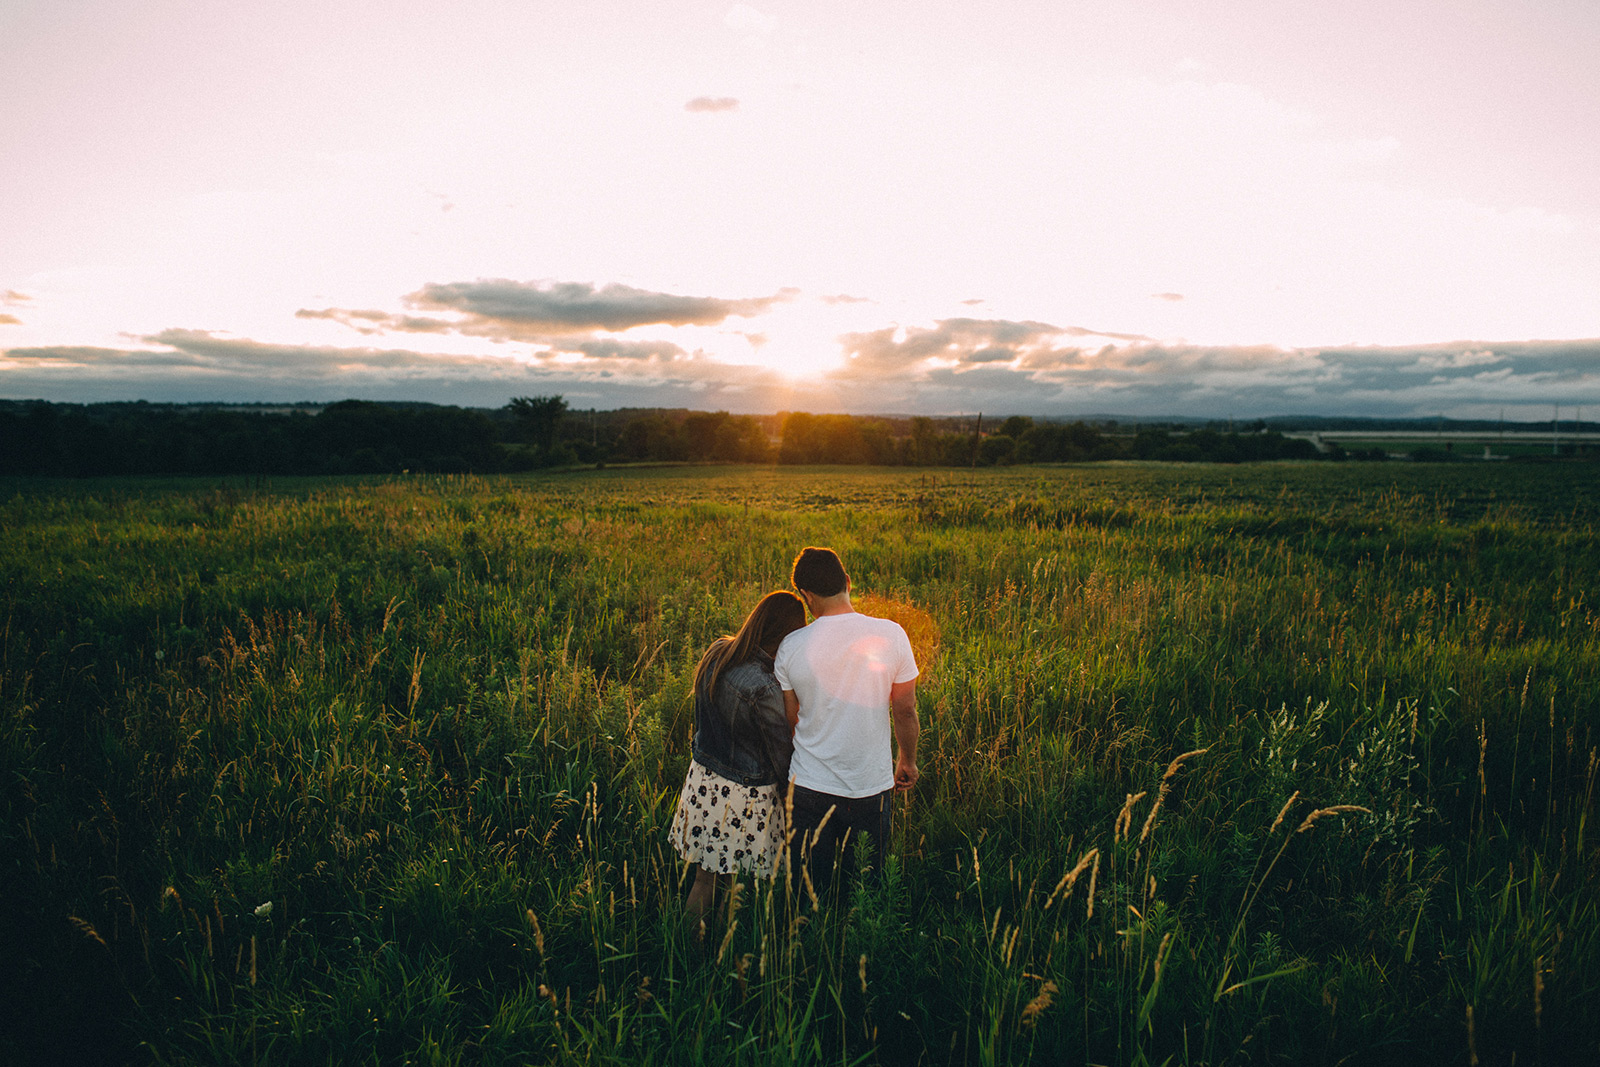 Rural-Ontario-modern-lifestyle-engagement-session-Sam-Wong-Visual-Cravings-AnJ_18